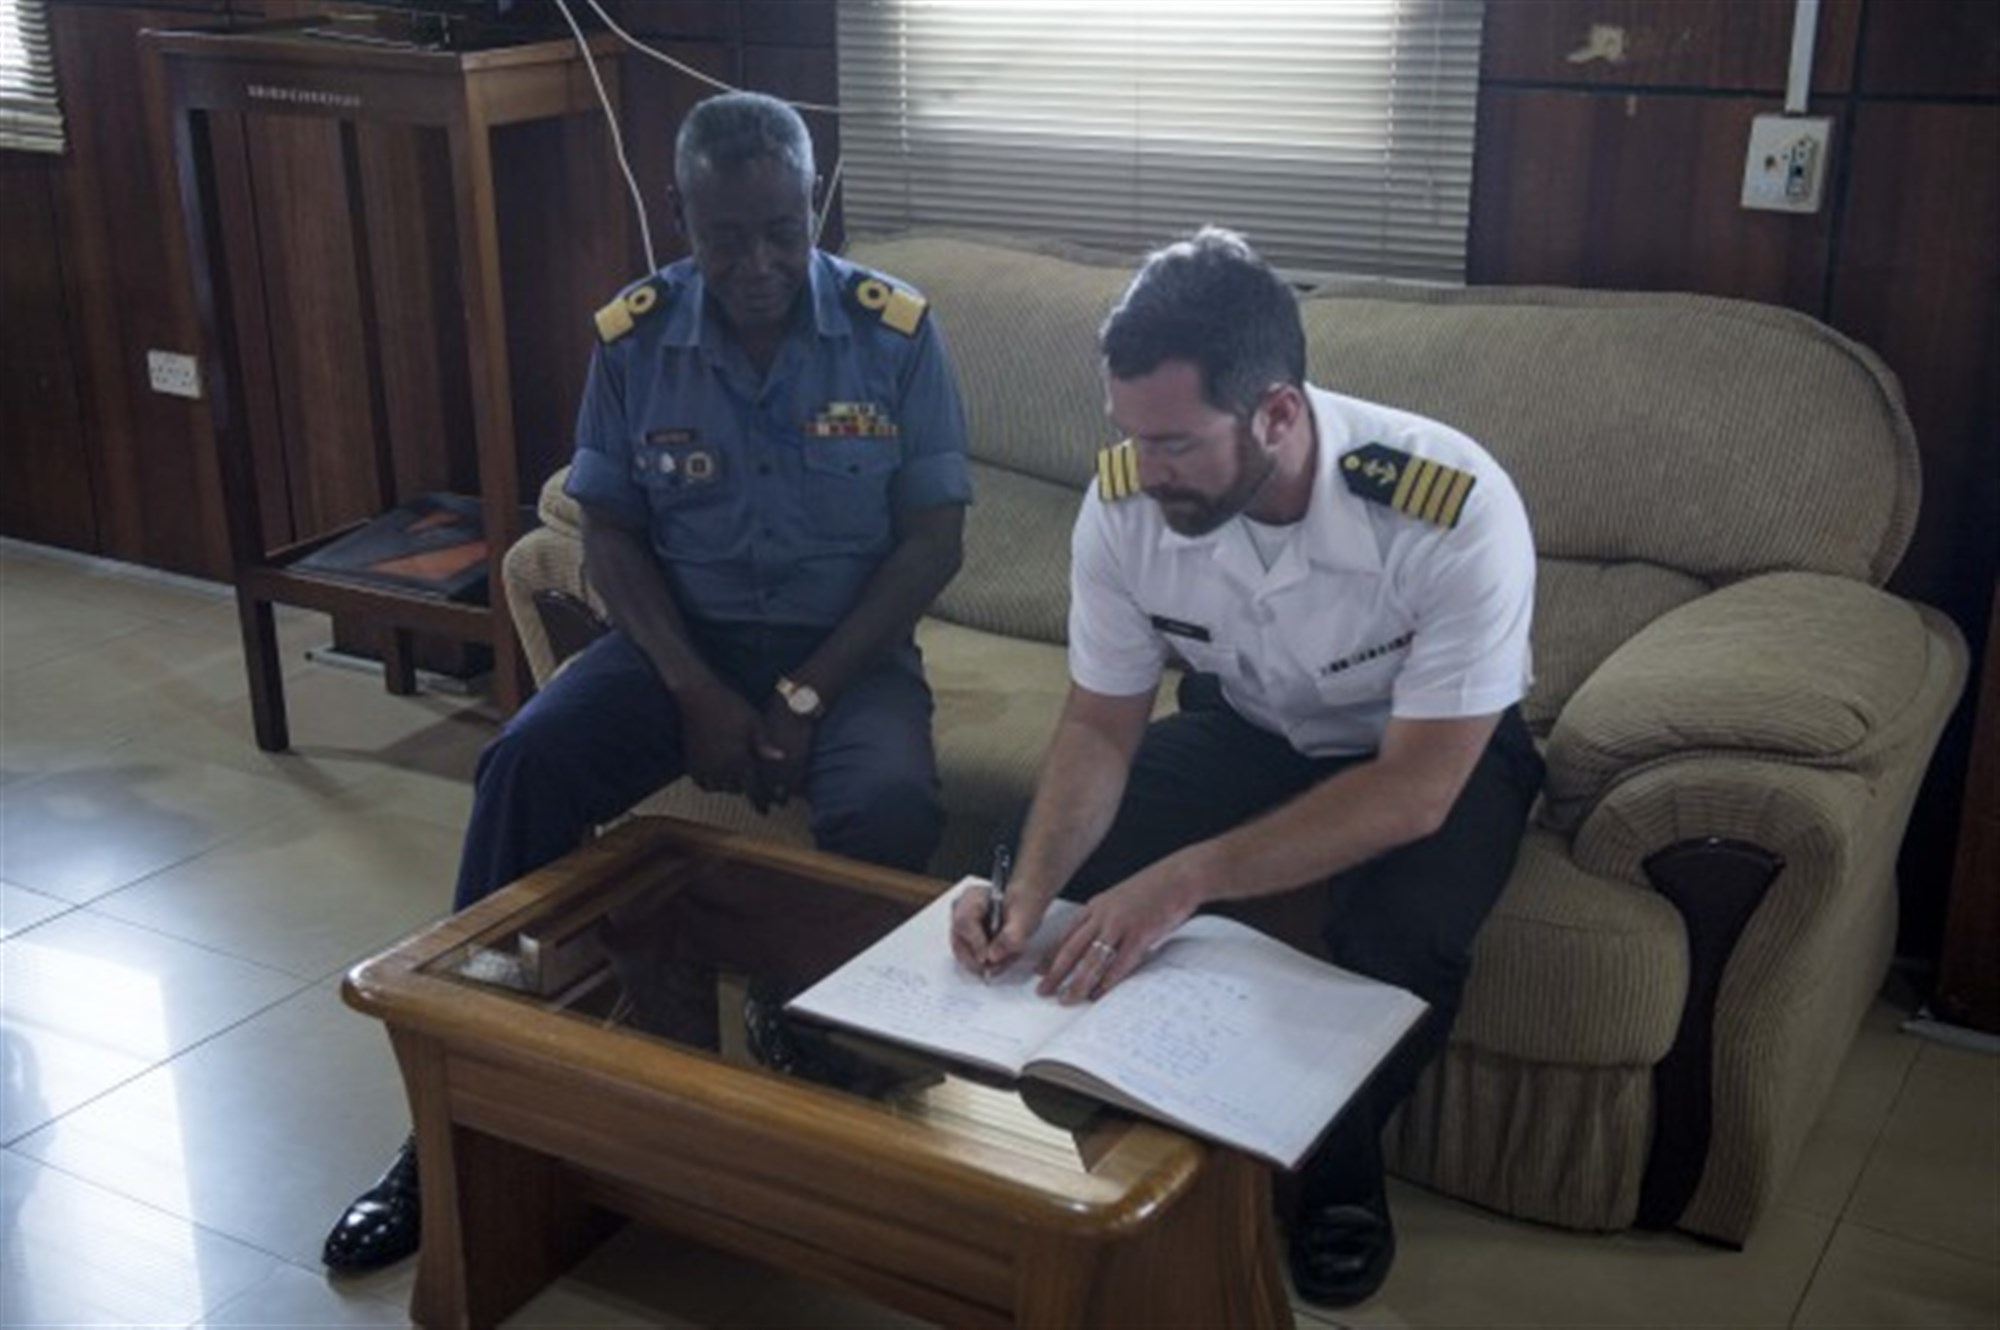 Capt. James Regan, ship's master of the Military Sealift Command's joint high-speed vessel USNS Spearhead (JHSV 1), right, signs the official guest registry of Commodore Steve Darbo of Ghanaian navy March 26, 2015. Spearhead is on a scheduled deployment to the U.S. 6th Fleet area of operations in support of the international collaborative capacity-building program Africa Partnership Station. (U.S. Navy photo by Mass Communication Specialist 2nd Class Kenan O'Connor/Released)